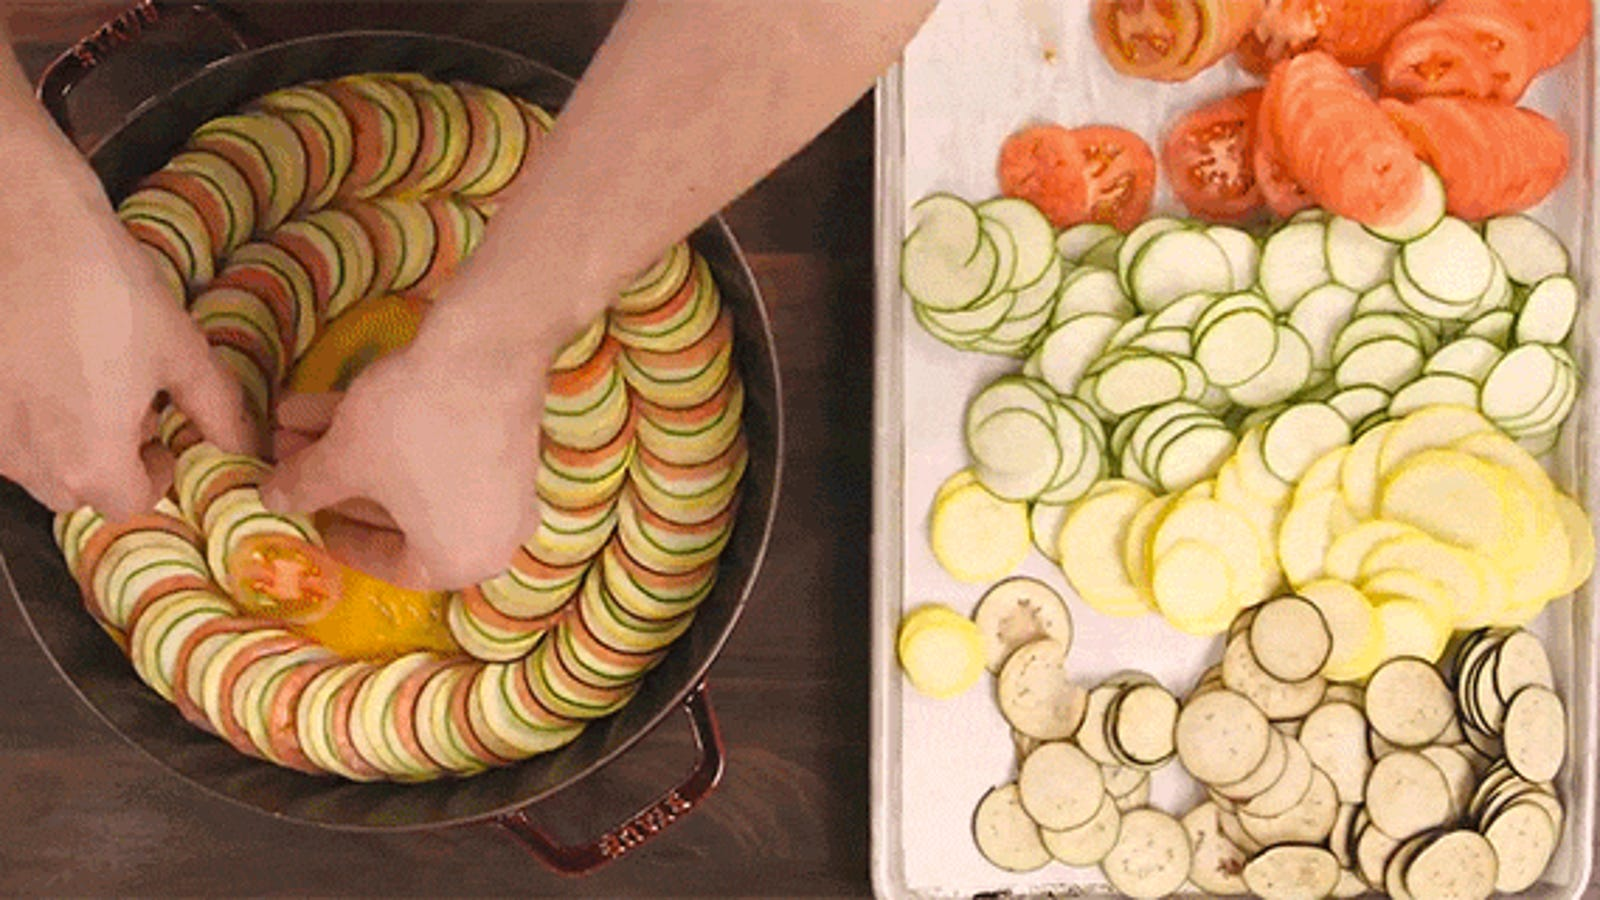 How to Make Ratatouille Just Like the Pixar Movie